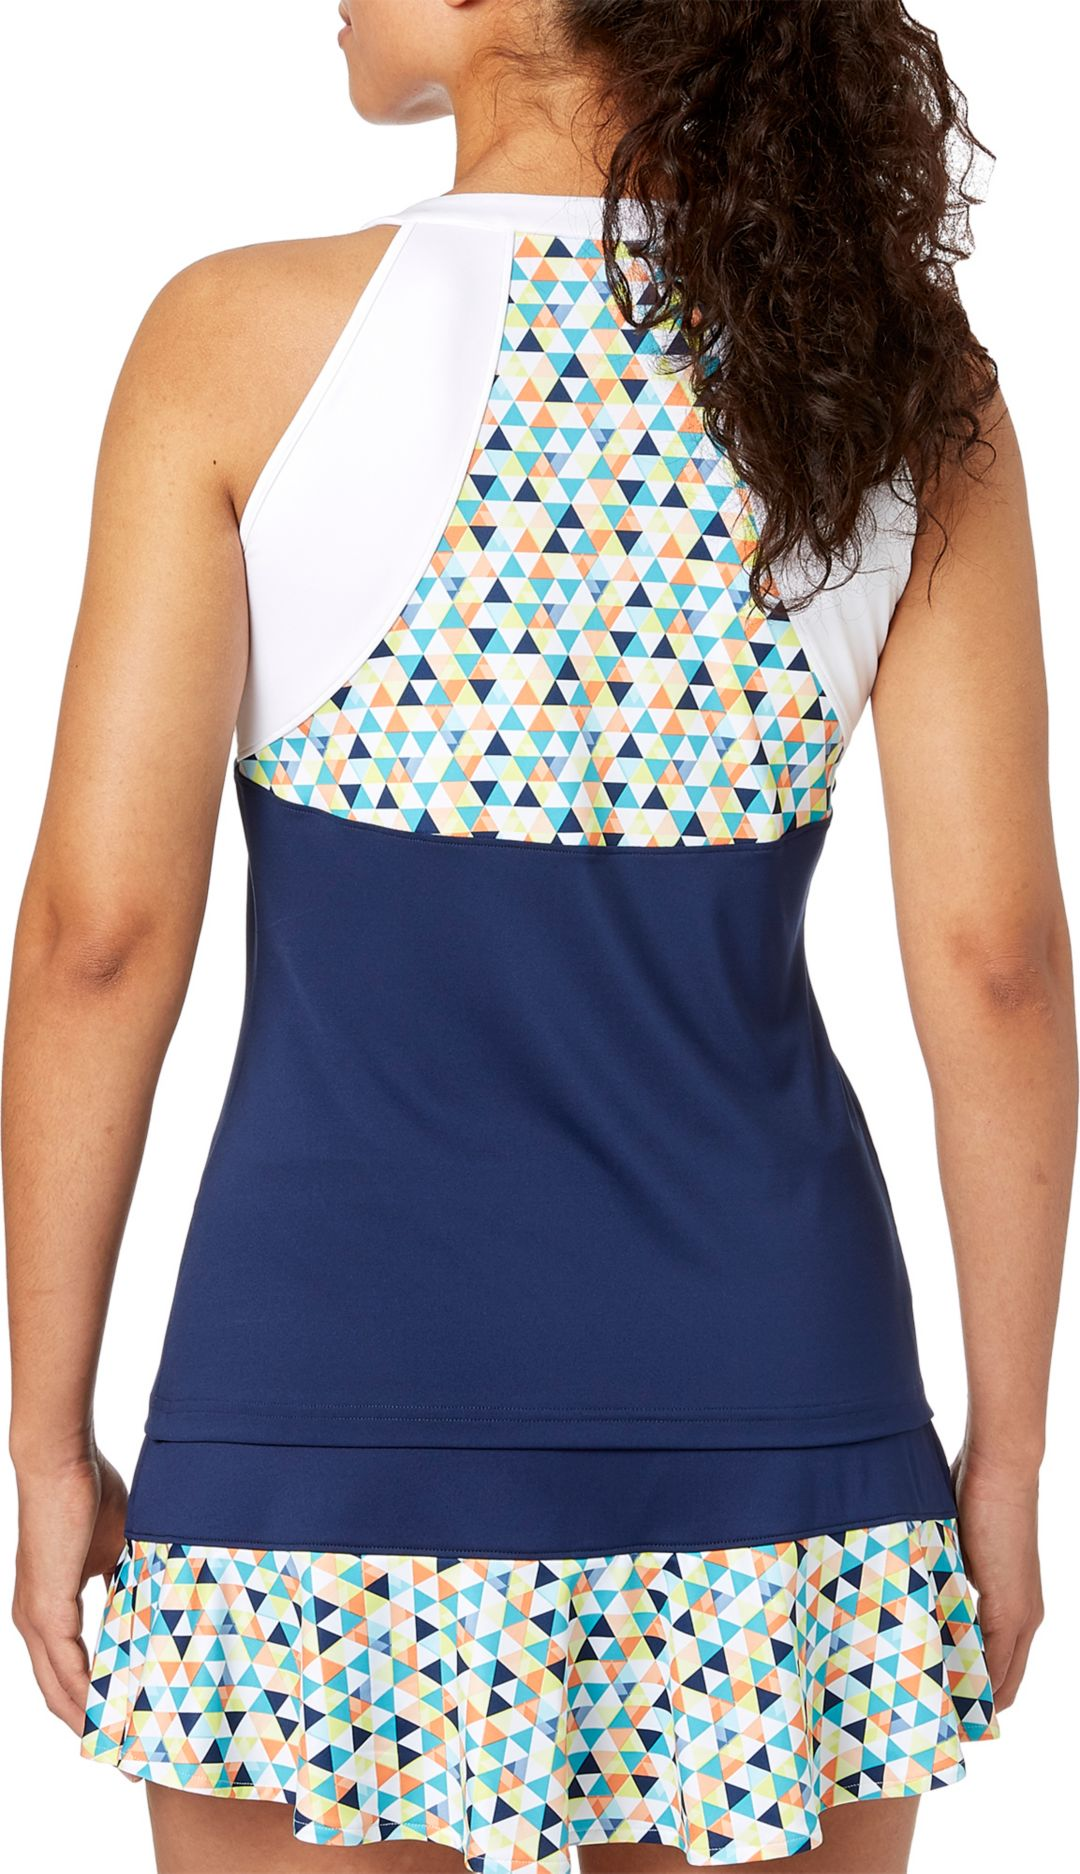 130ad86b3b Slazenger Women's Prism Tennis Tank Top | DICK'S Sporting Goods